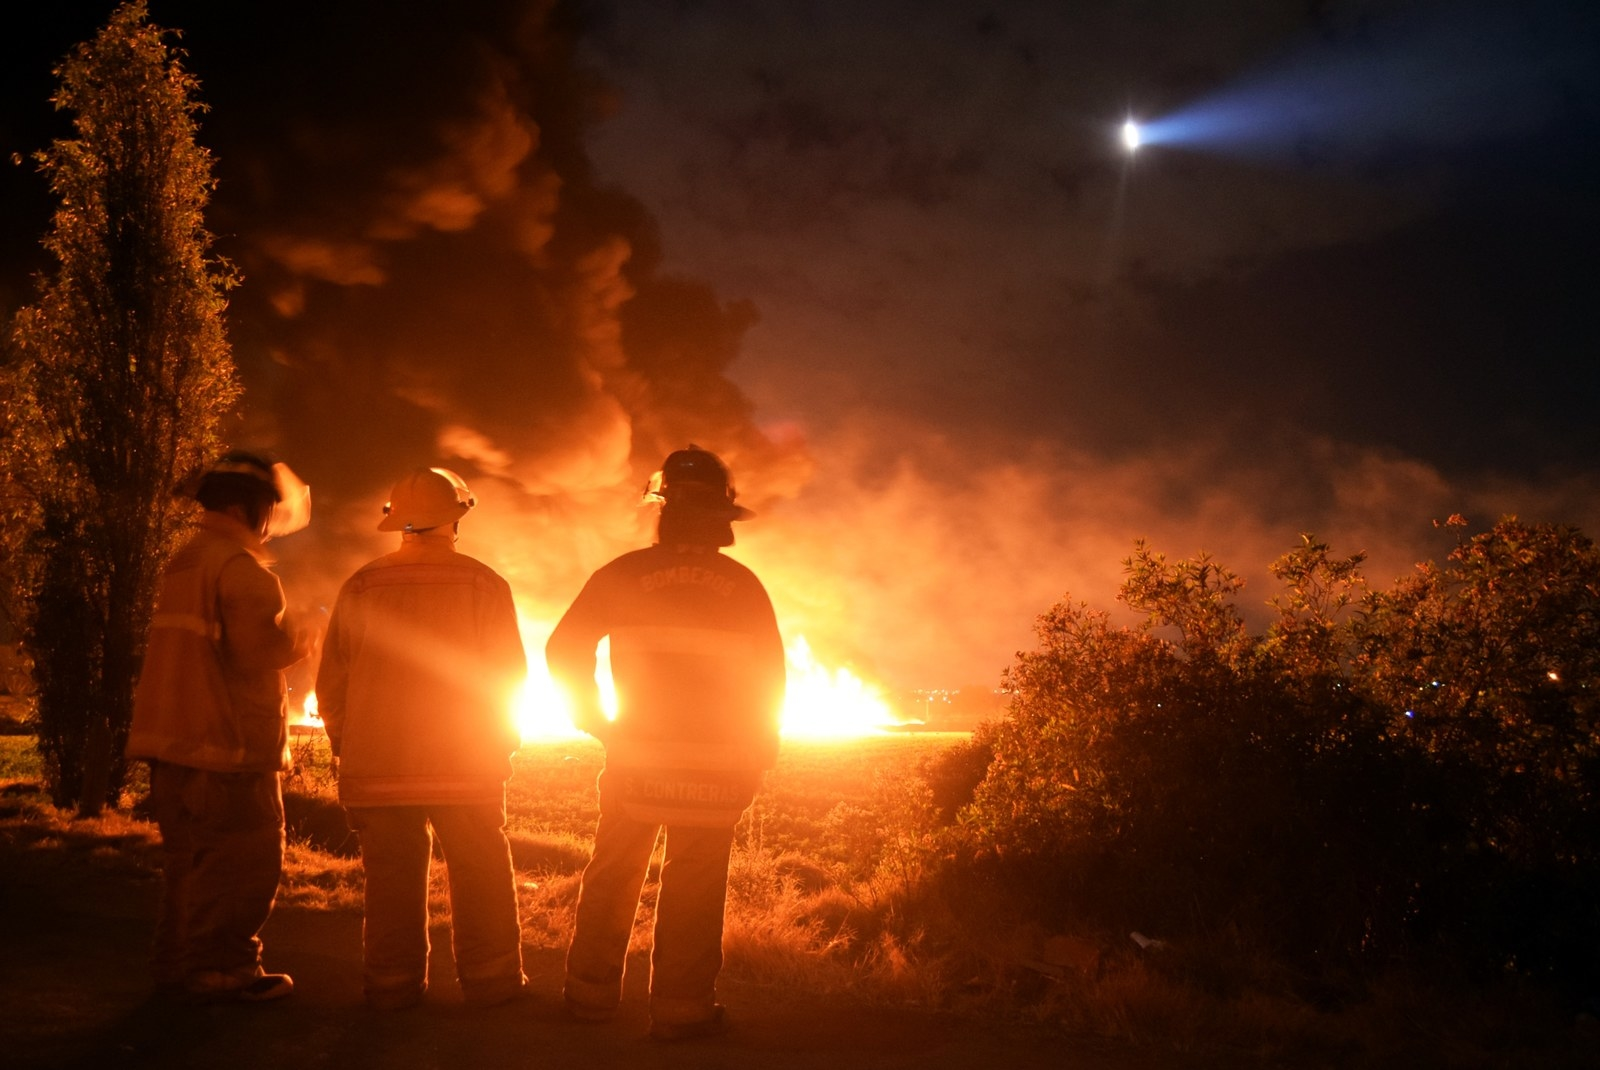 Mexican Troops Stood By As People Crowded To Steal Fuel From A Punctured Pipeline. Hours Later, It Killed Dozens.